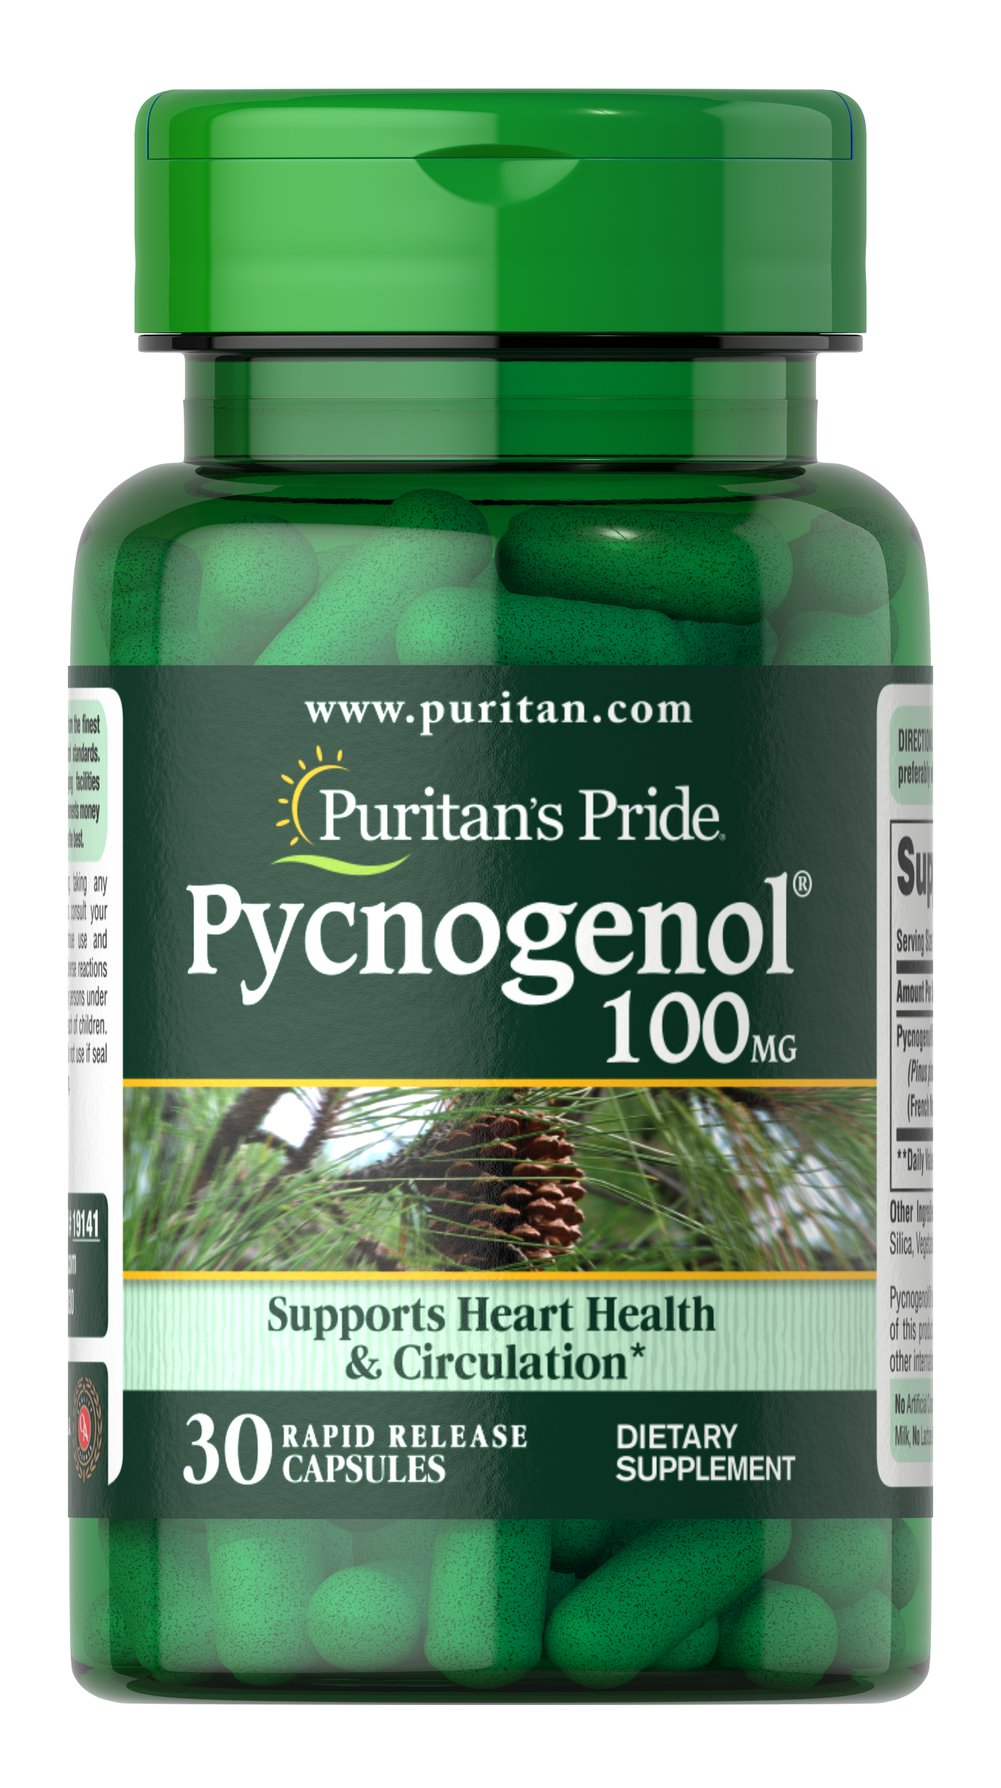 Pycnogenol® 100 mg Thumbnail Alternate Bottle View